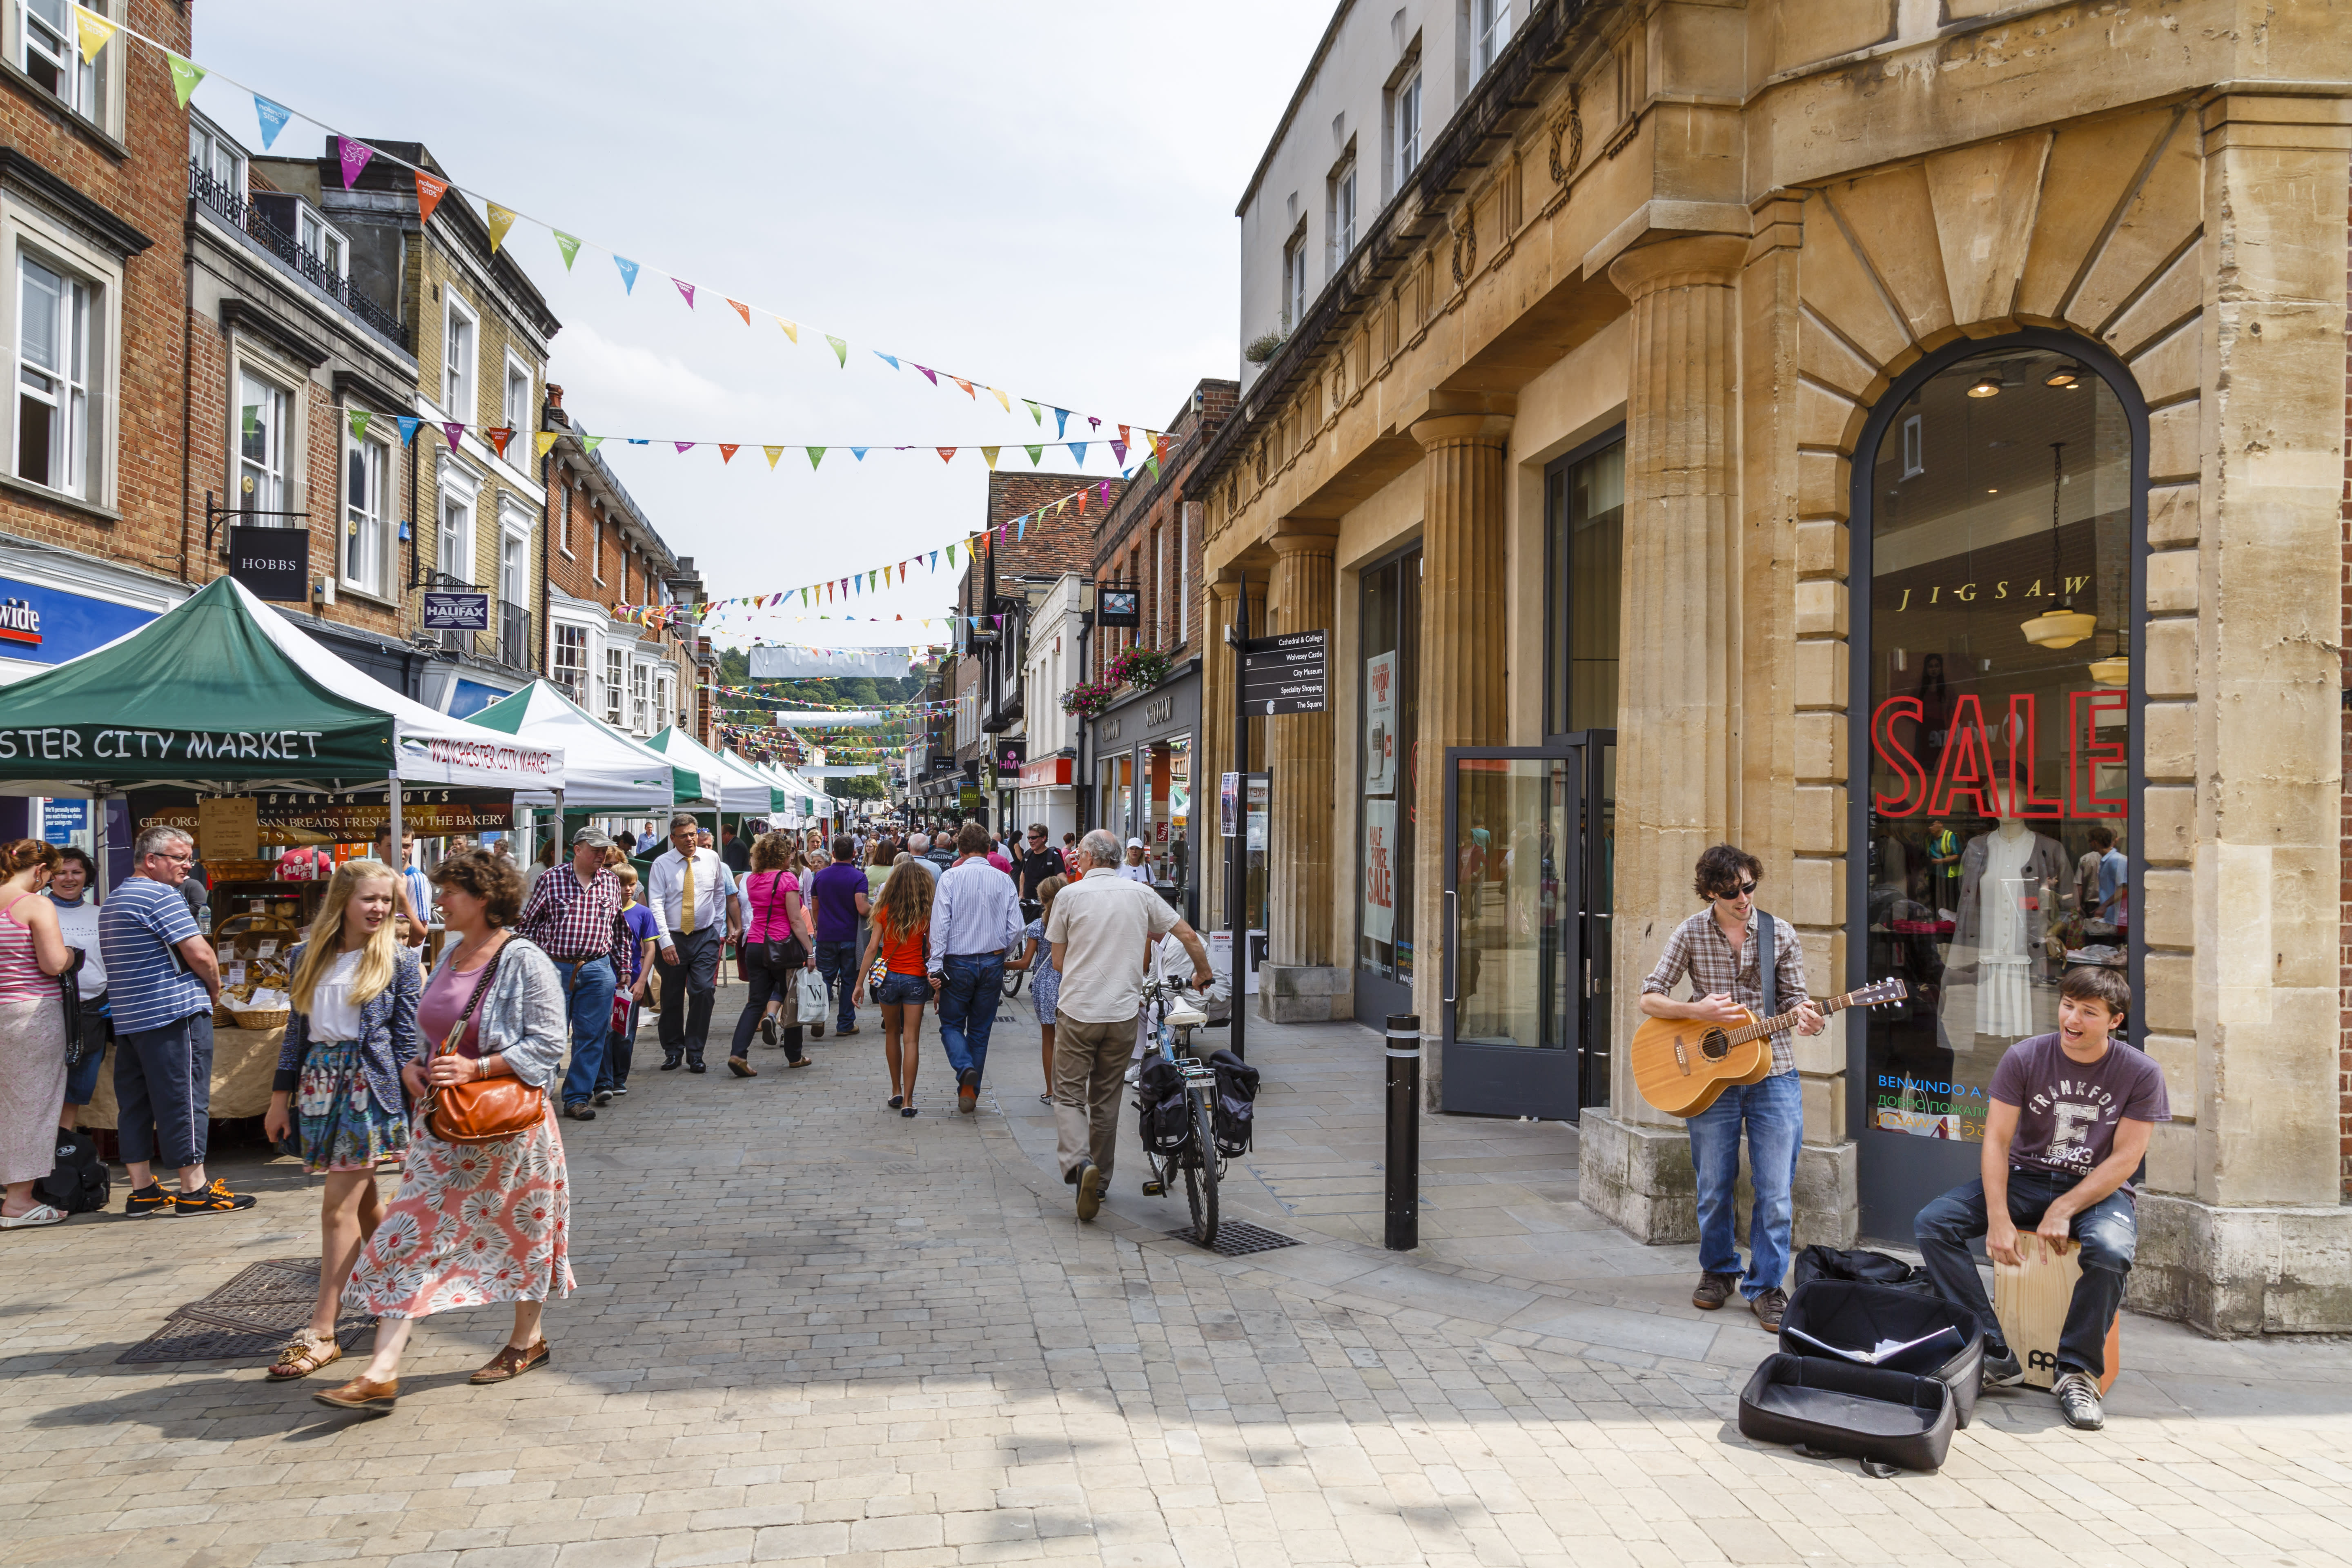 English high streets to receive £95m regeneration boost